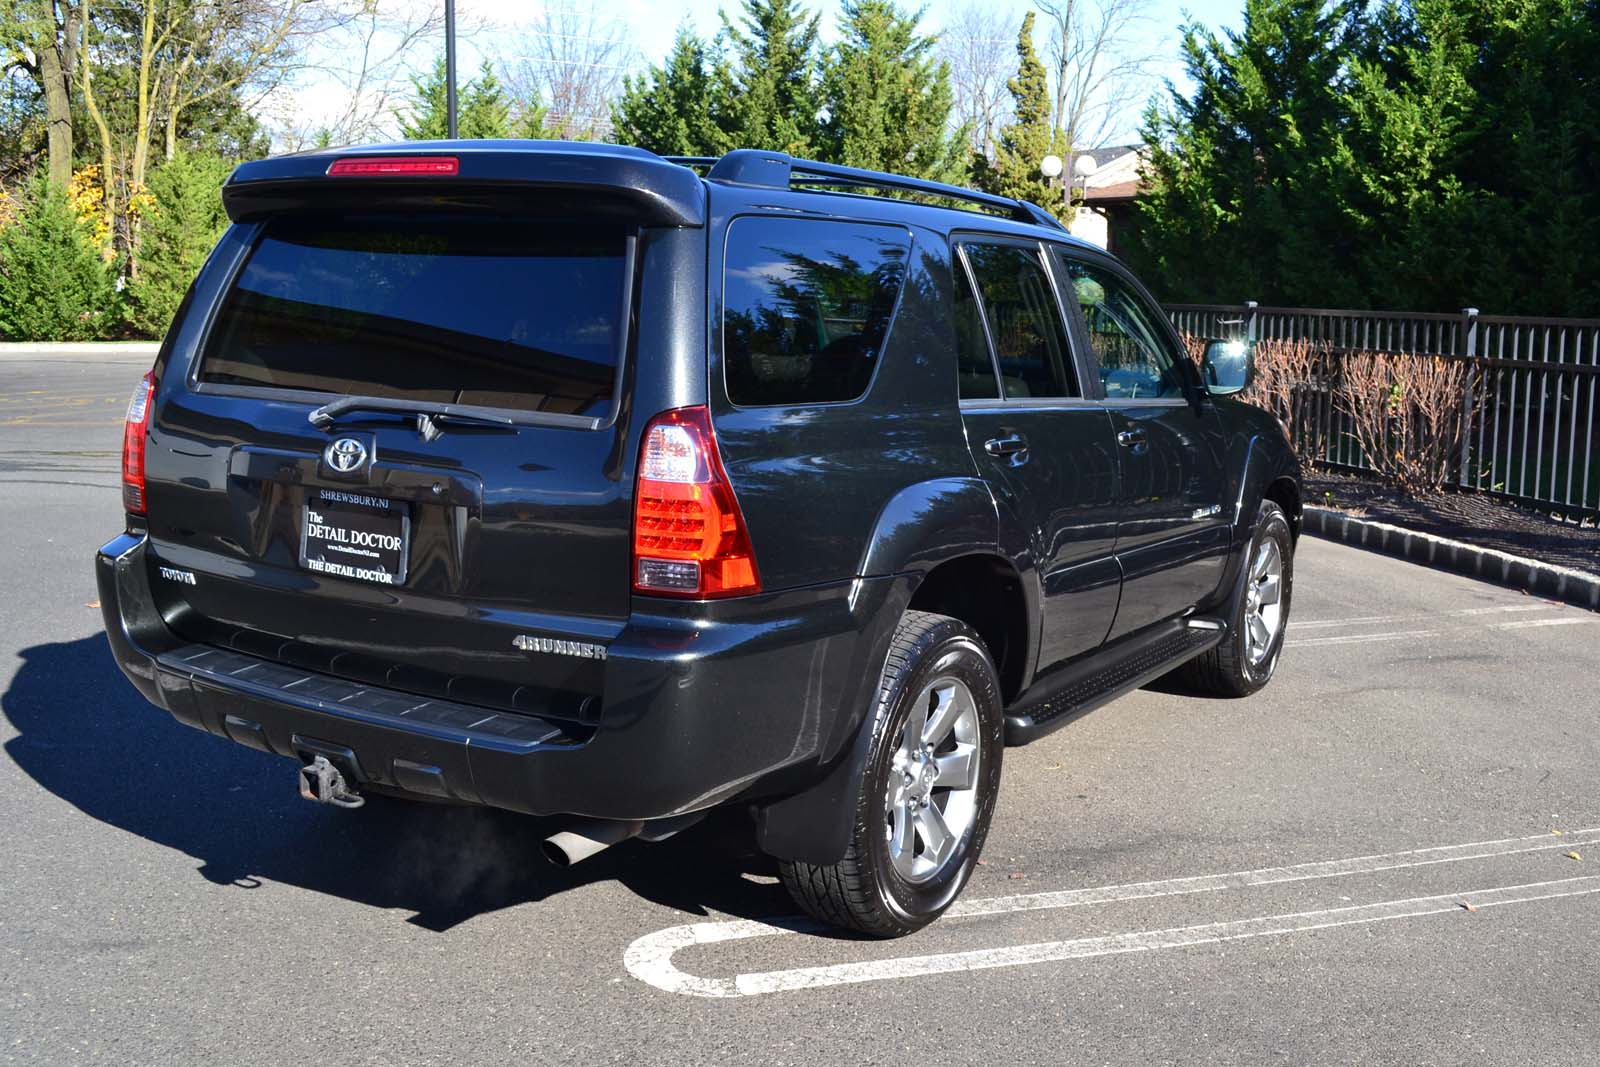 Used 4runner For Sale >> 2008 TOYOTA 4 RUNNER LIMITED - Pre-Owned